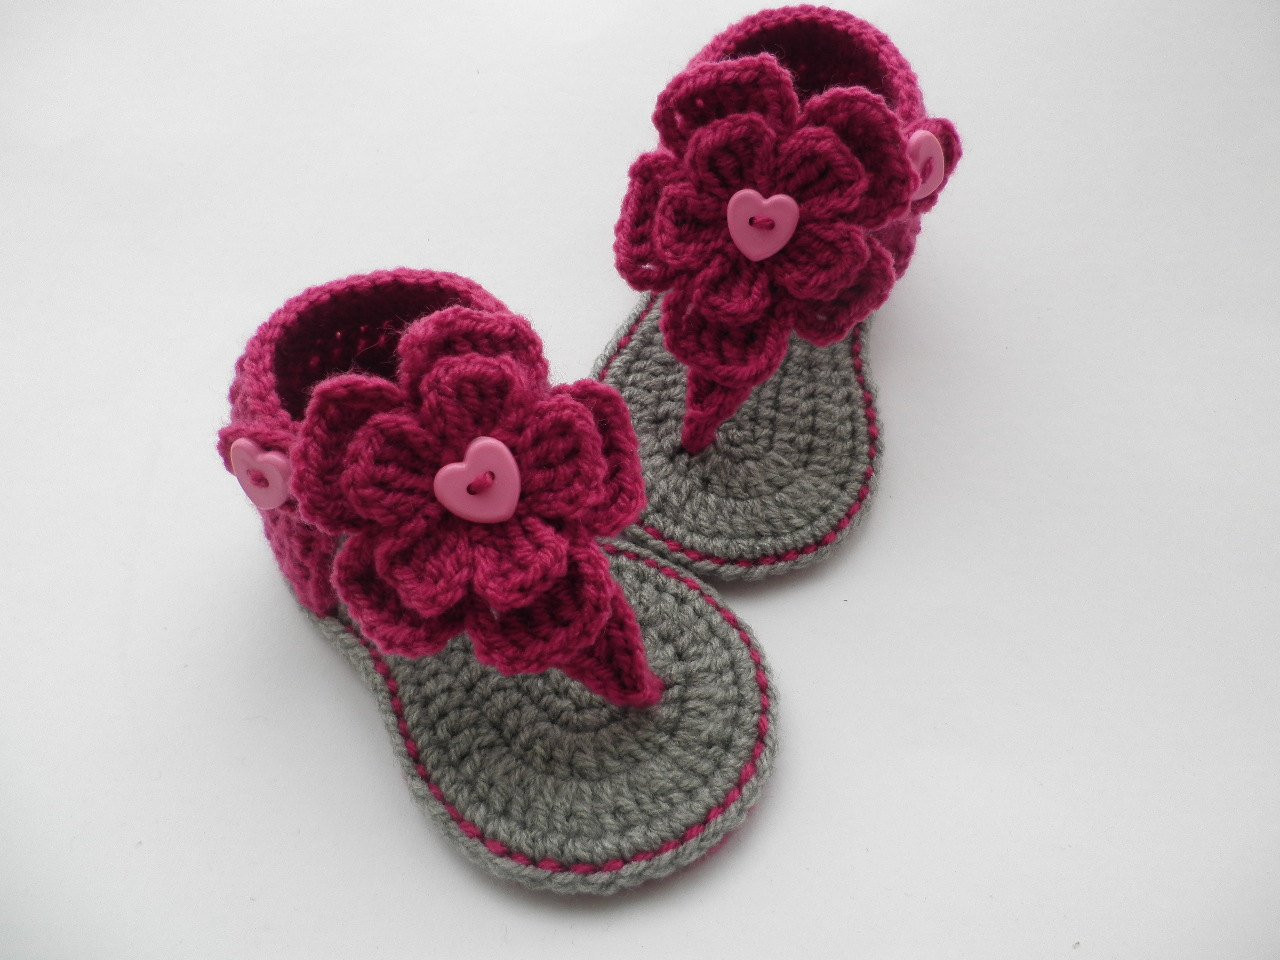 Crochet Baby Sandals Lovely Crochet Baby Sandals Baby Gladiator Sandals Baby by Of New 46 Models Crochet Baby Sandals